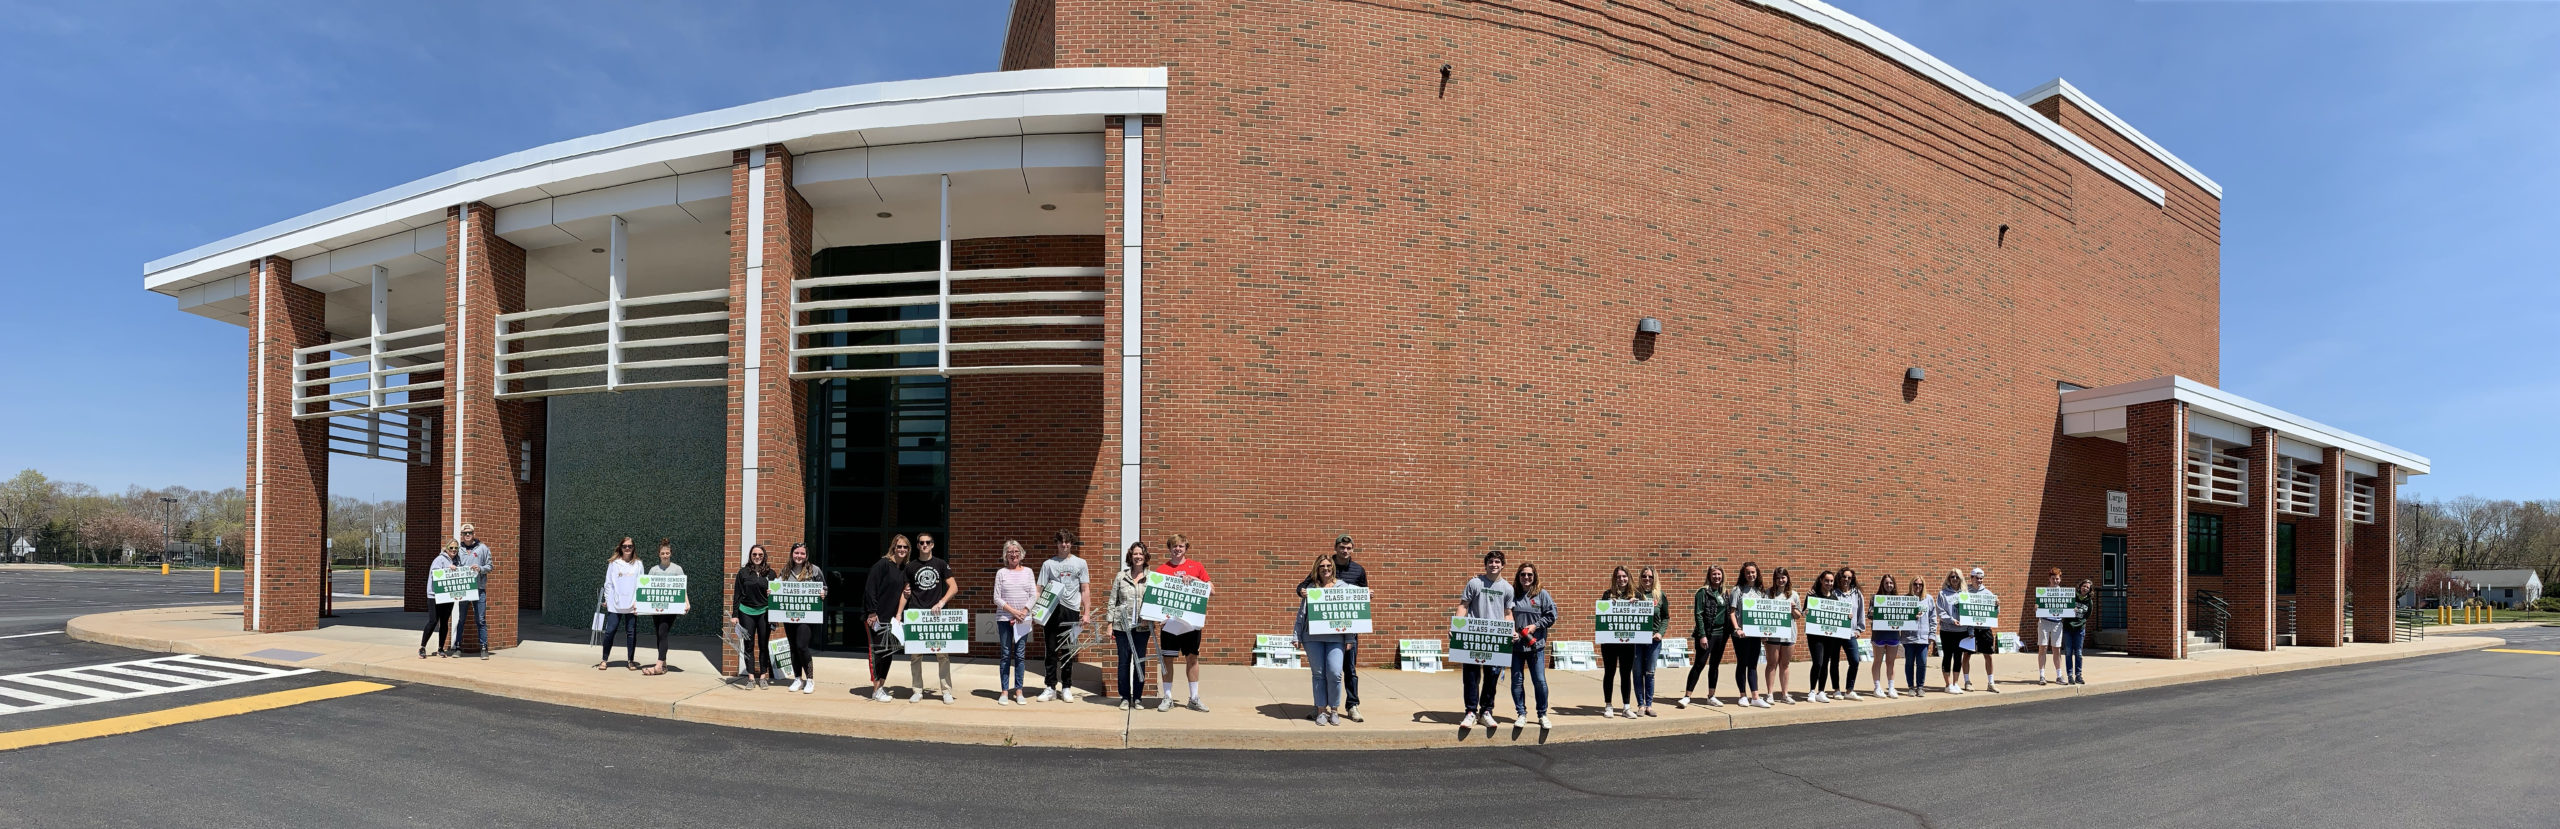 """Parents and seniors teamed up on April 25 to pay tribute to the Westhampton Beach High School Class of 2020 by delivering 224 green and white graduation lawn signs bearing the words """"Hurricane Strong.""""    COURTESY WESTHAMPTON BEACH SCHOOL DISTRICT"""